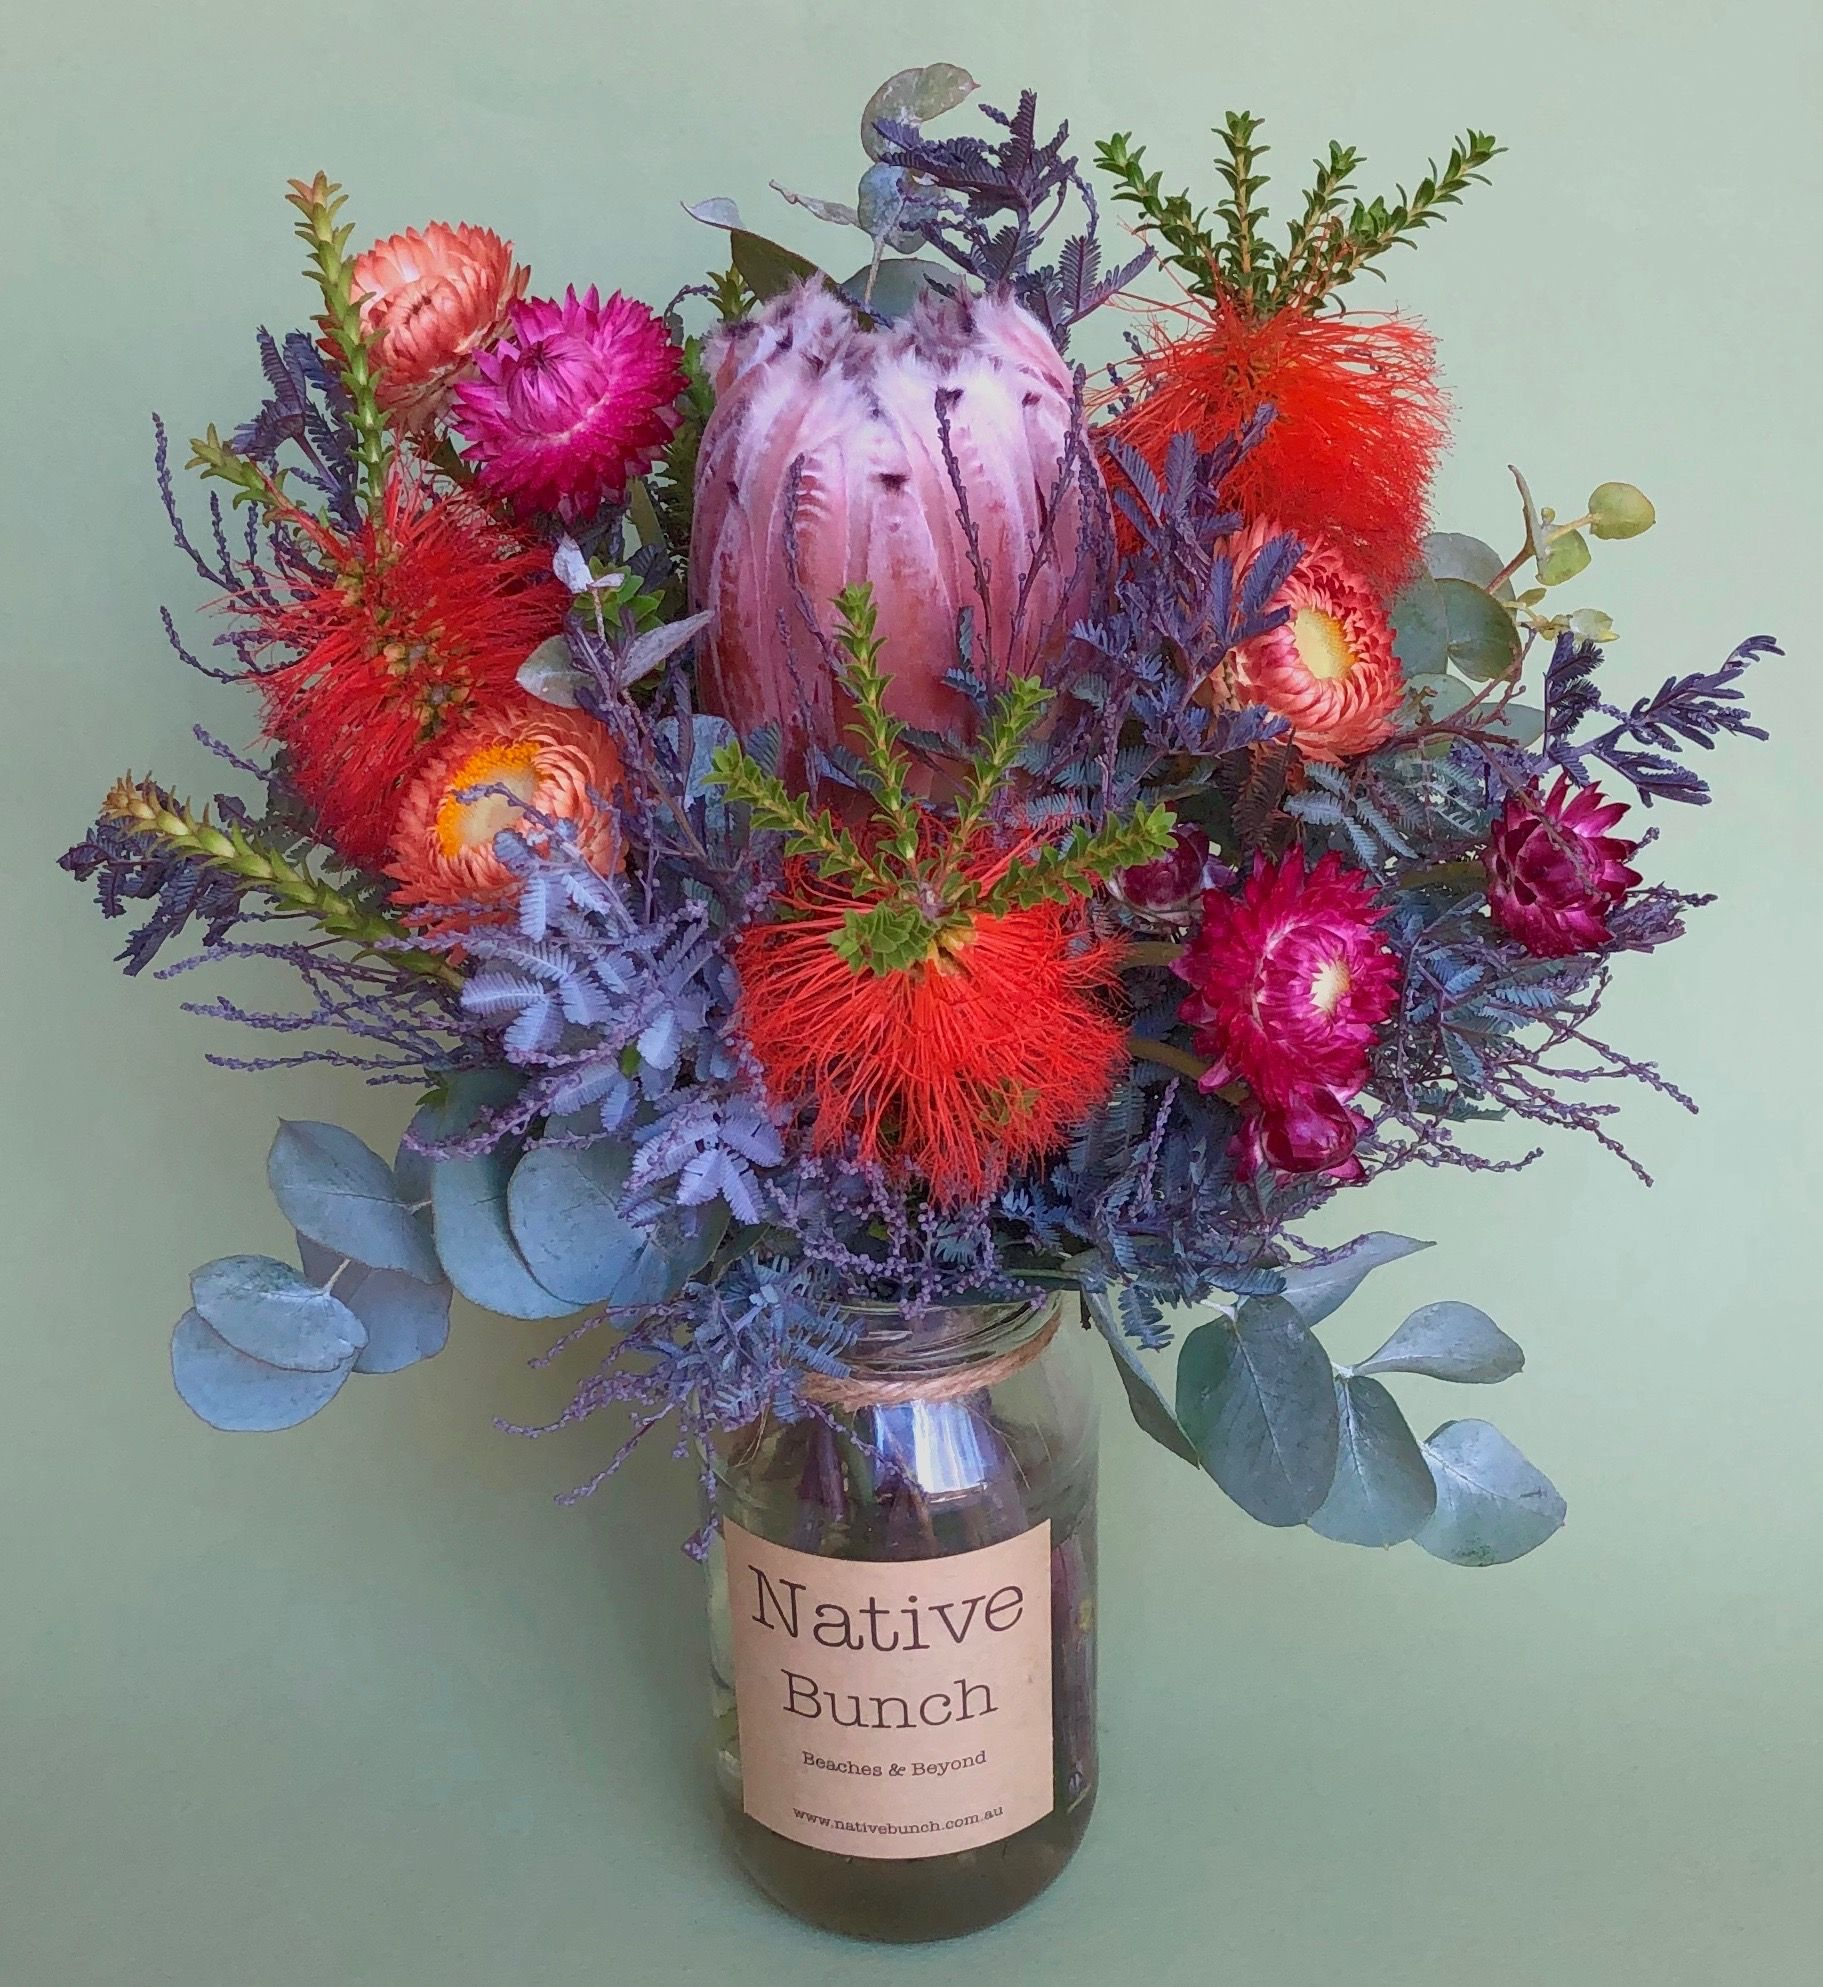 This week's Posy from Native Bunch Protea, Beaufortia